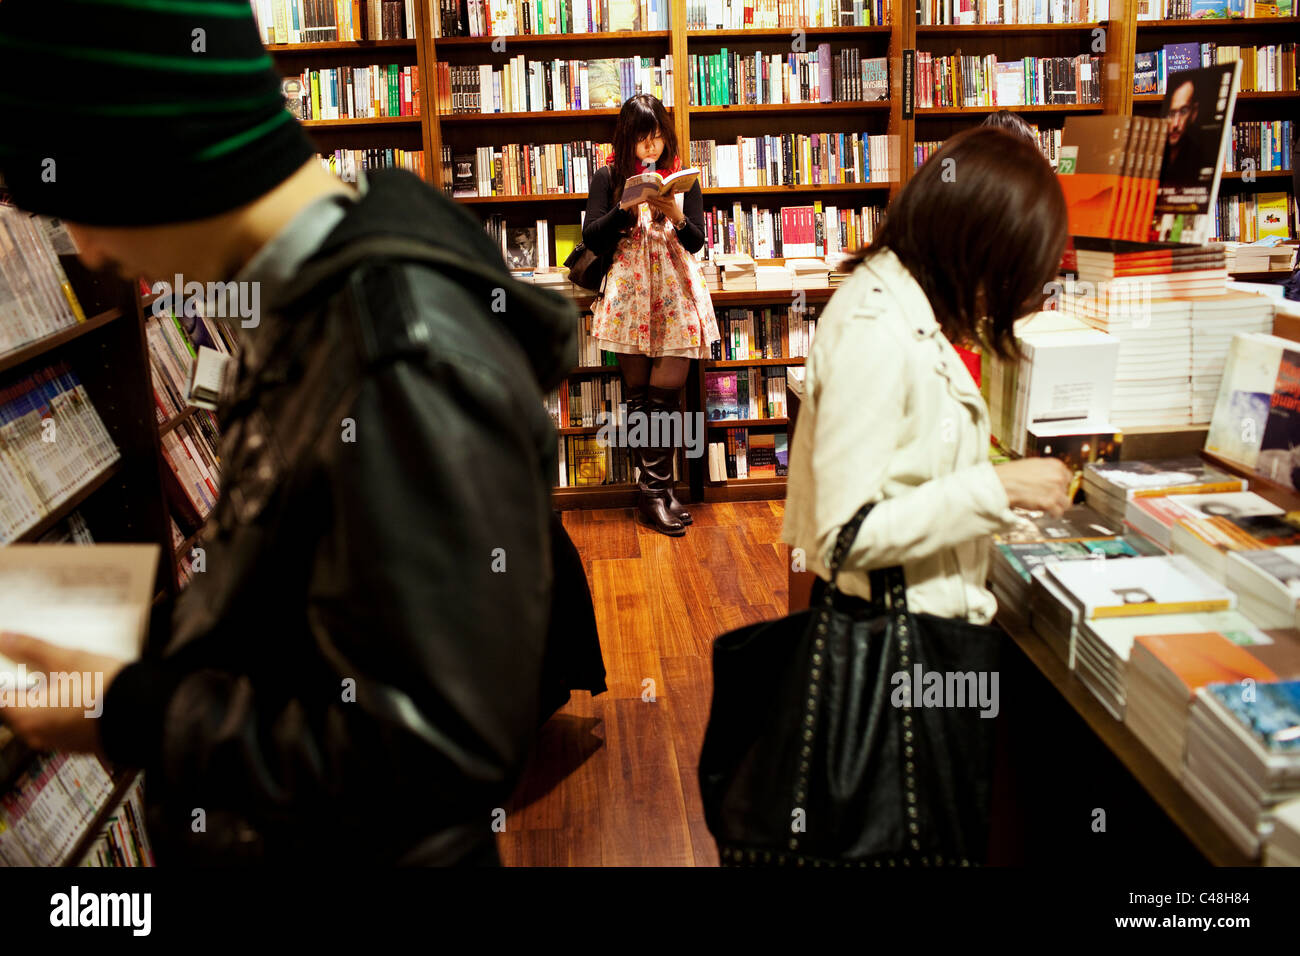 Taipei's youth enjoy reading at the all-night-bookstore in Taipei, Taiwan, October 29, 2010. - Stock Image